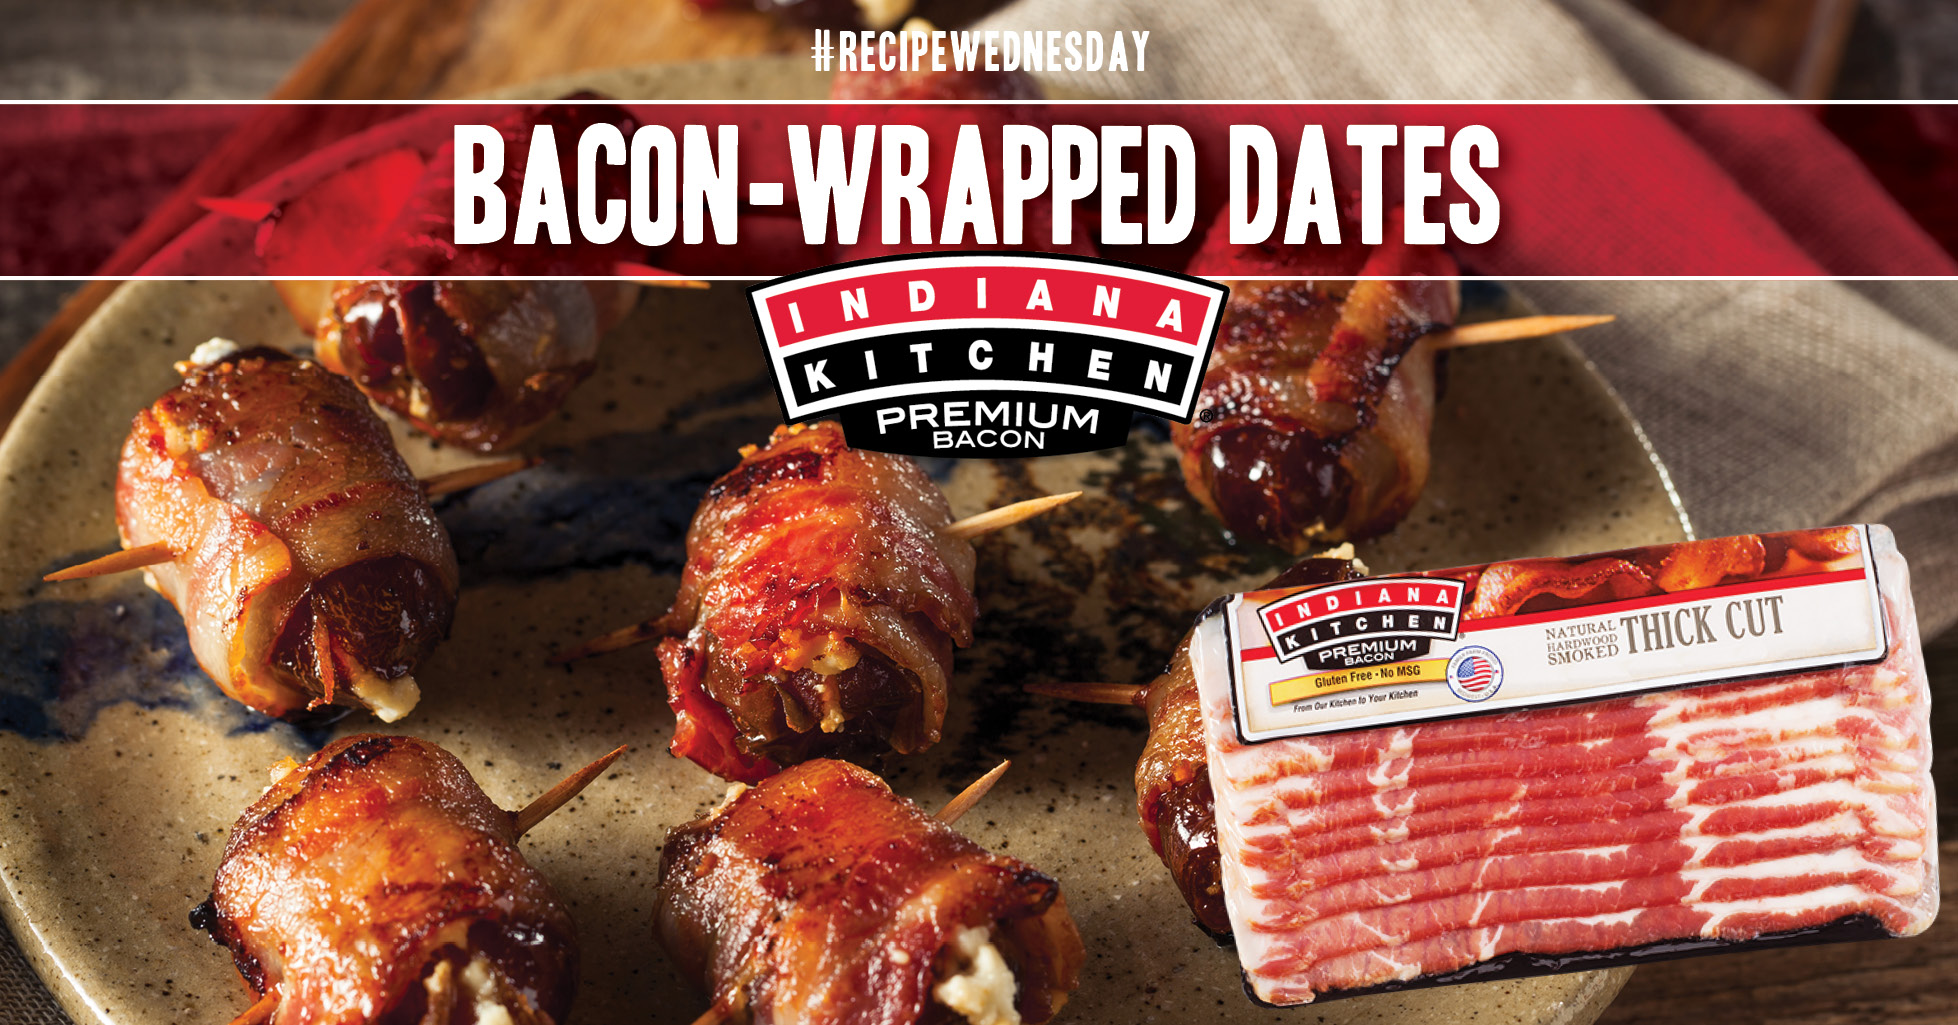 Bacon Wrapped Dates featuring Indiana Kitchen Thick Cut Bacon